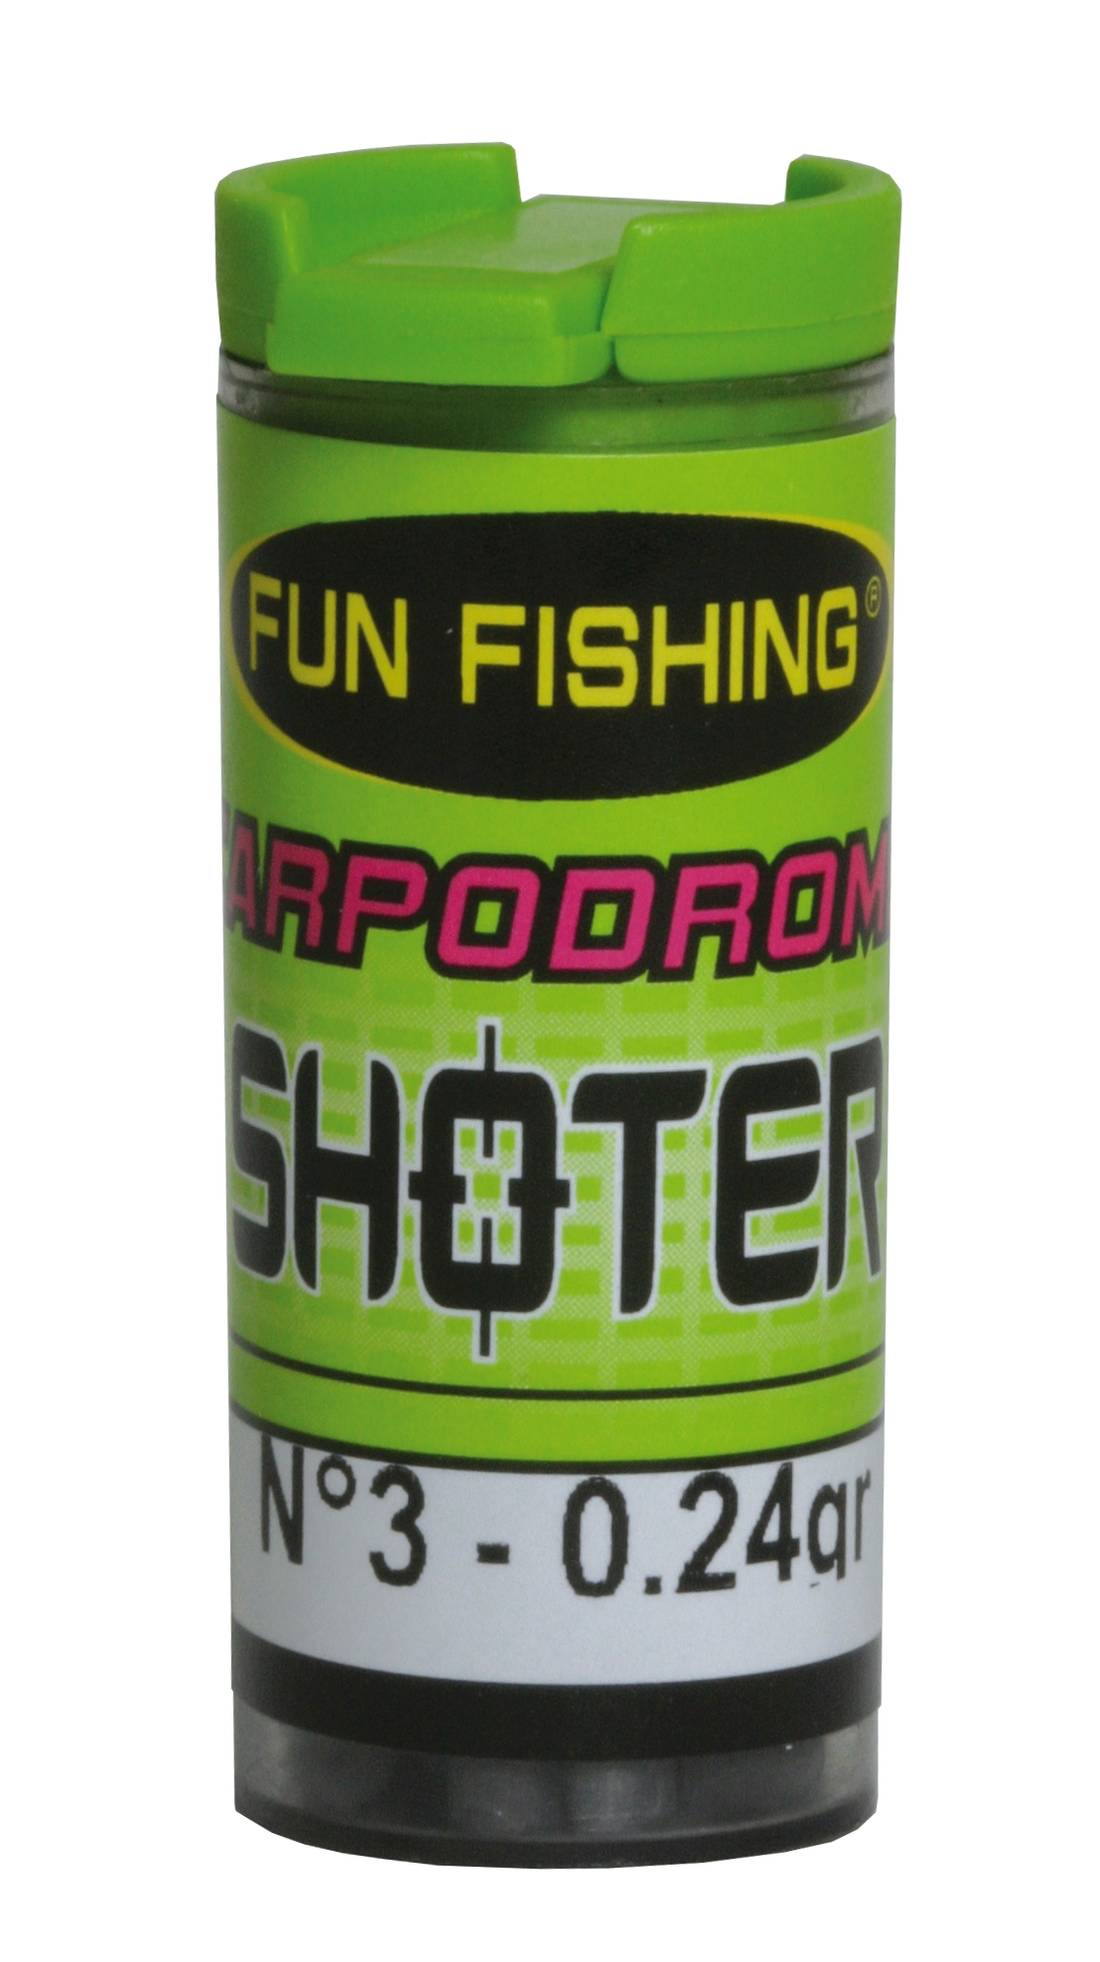 Recharge Plomb Shoter Fun Fishing N°03-0.24G